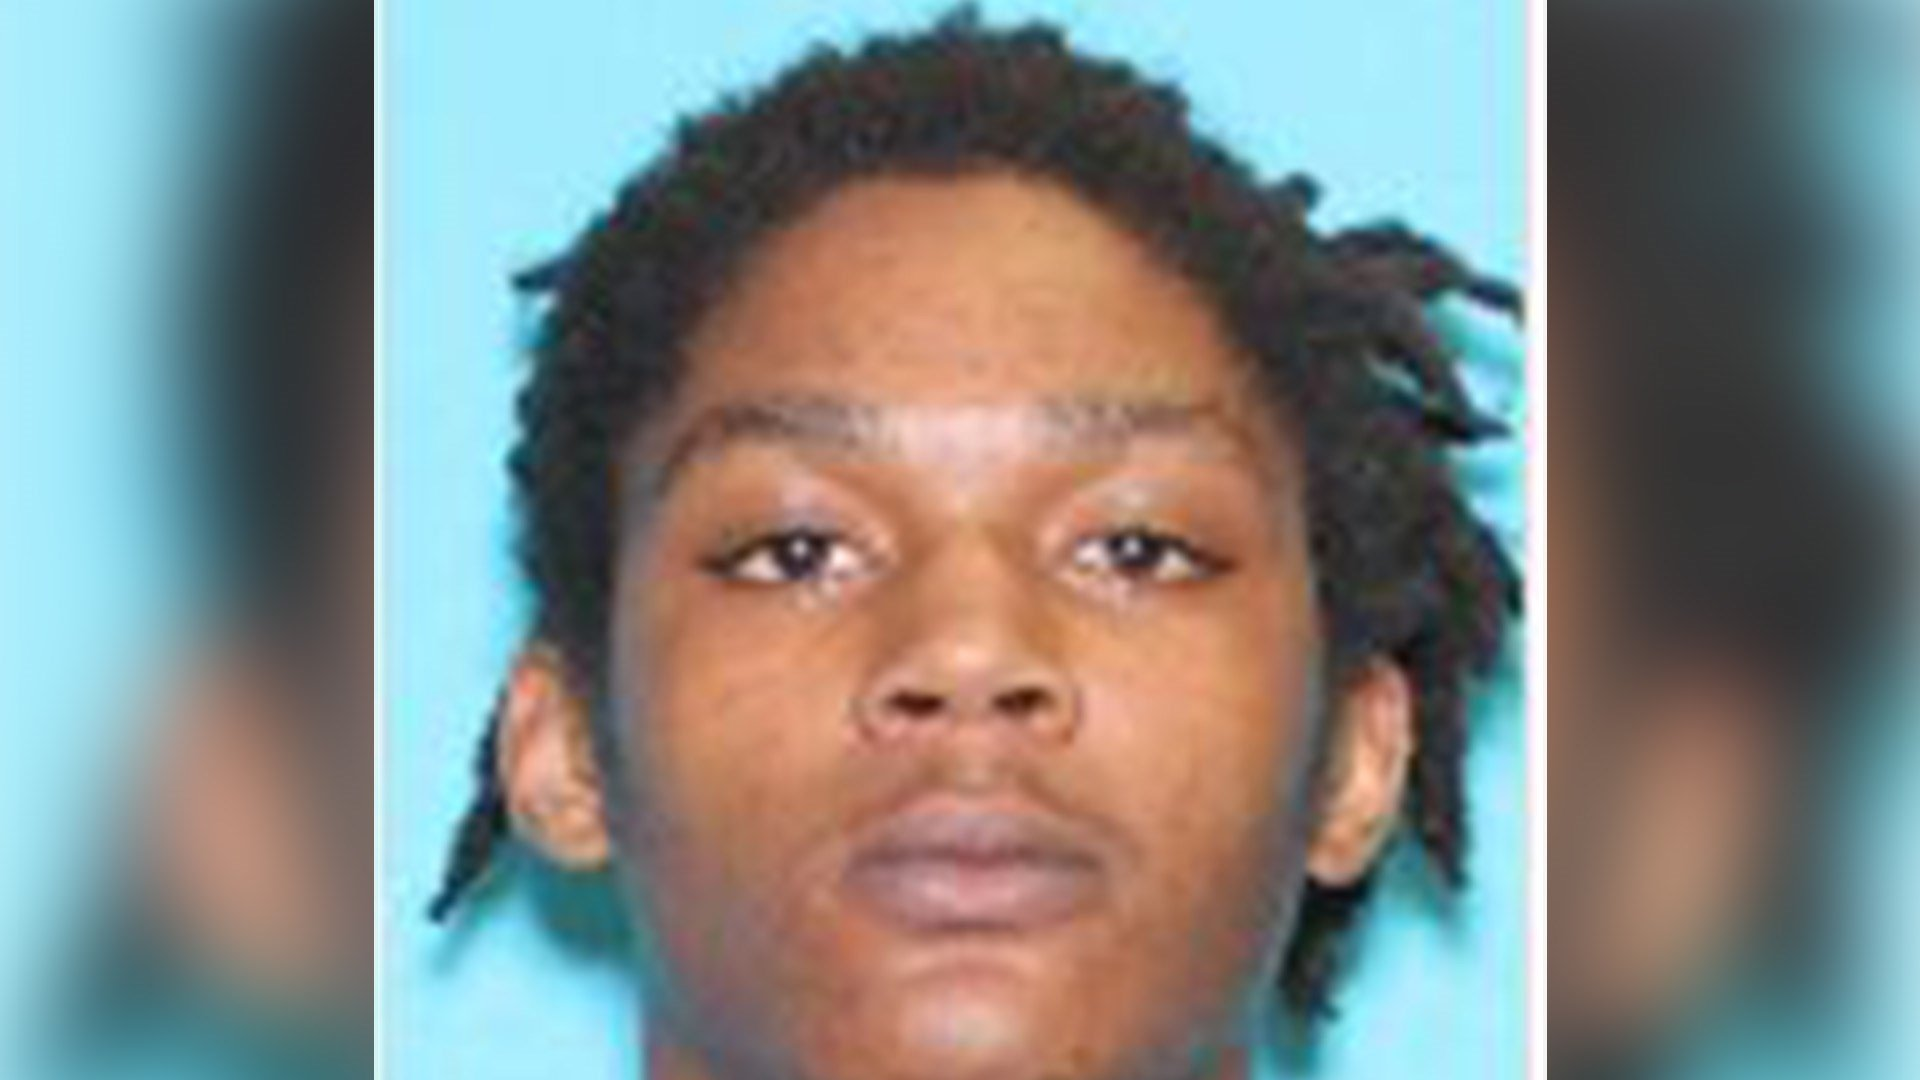 Picture of 23-year-old Deddrick Davonte Hill, wanted in connection to a homicide in Colorado Springs on Nov. 6.